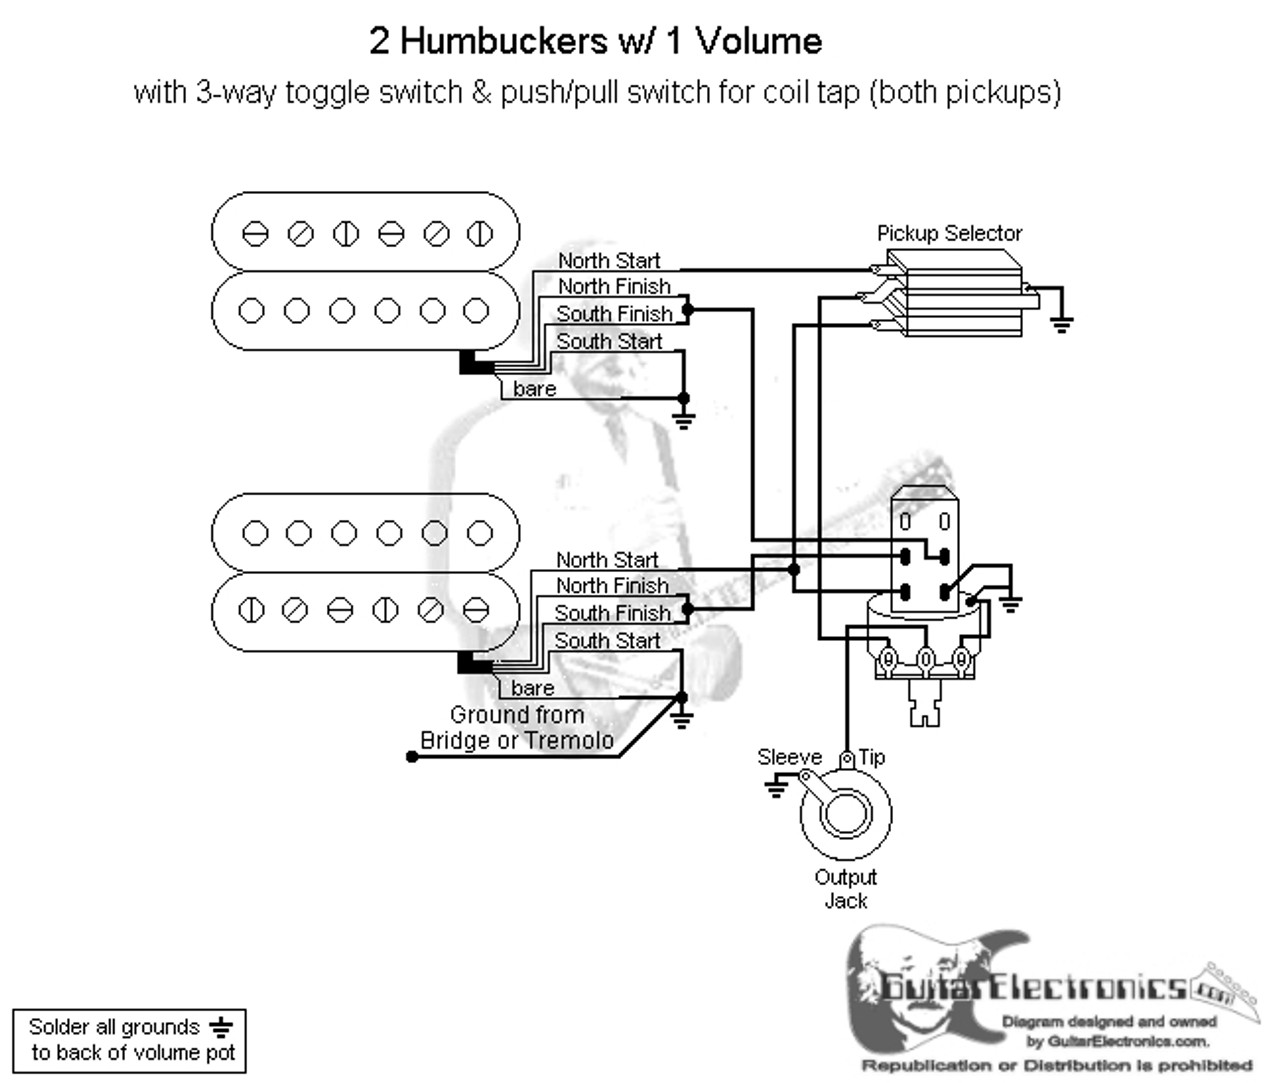 2 humbuckers 3 way toggle switch 1 volume dual coil tap Photoelectric Switch Wiring Diagram